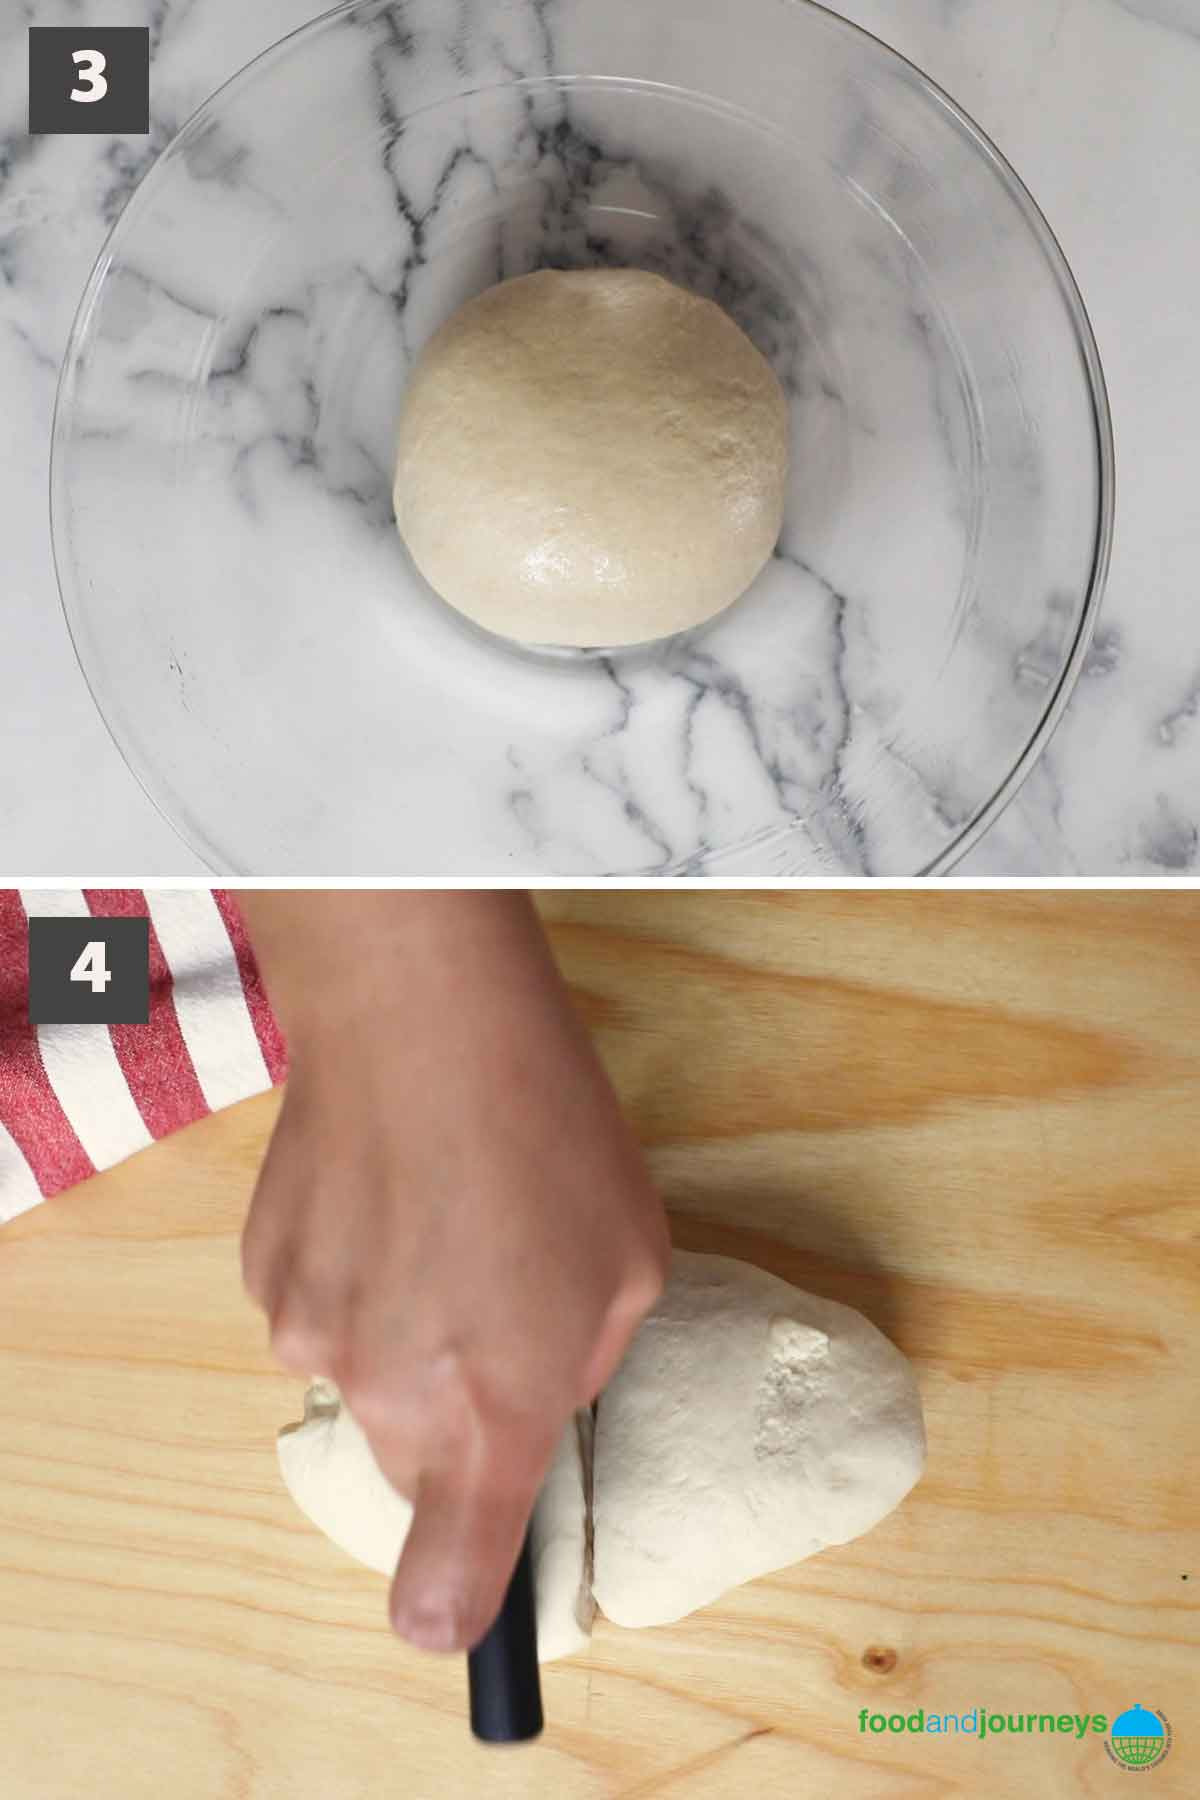 Second part of updated collage of image showing the step by step process of making cheese buns.